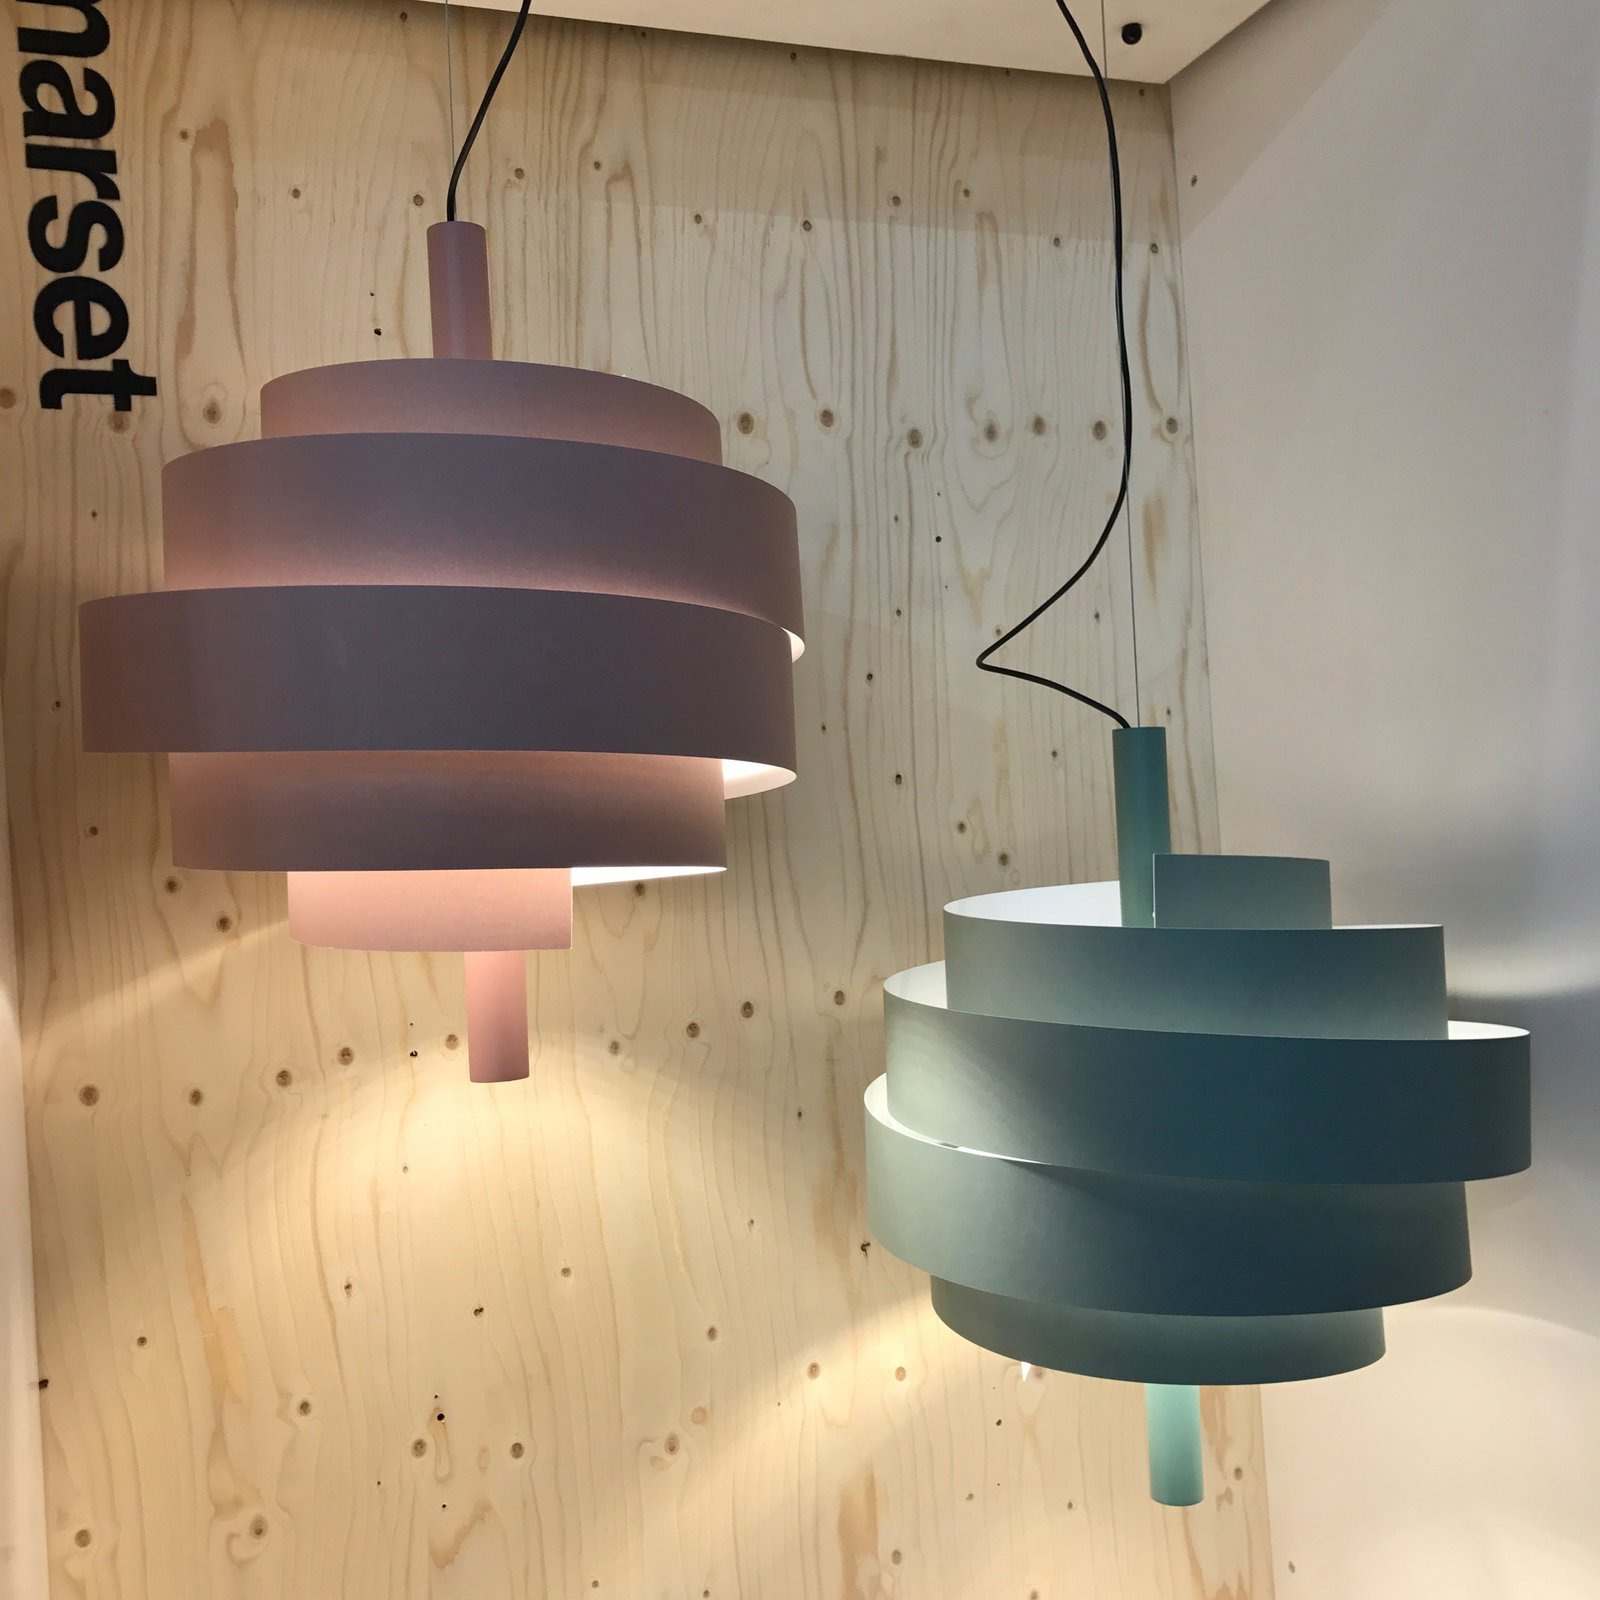 Piola lamps, made of PVC and designed by Christophe Mathieu for Marset. The Best of New York Design Week 2017 - Photo 9 of 36